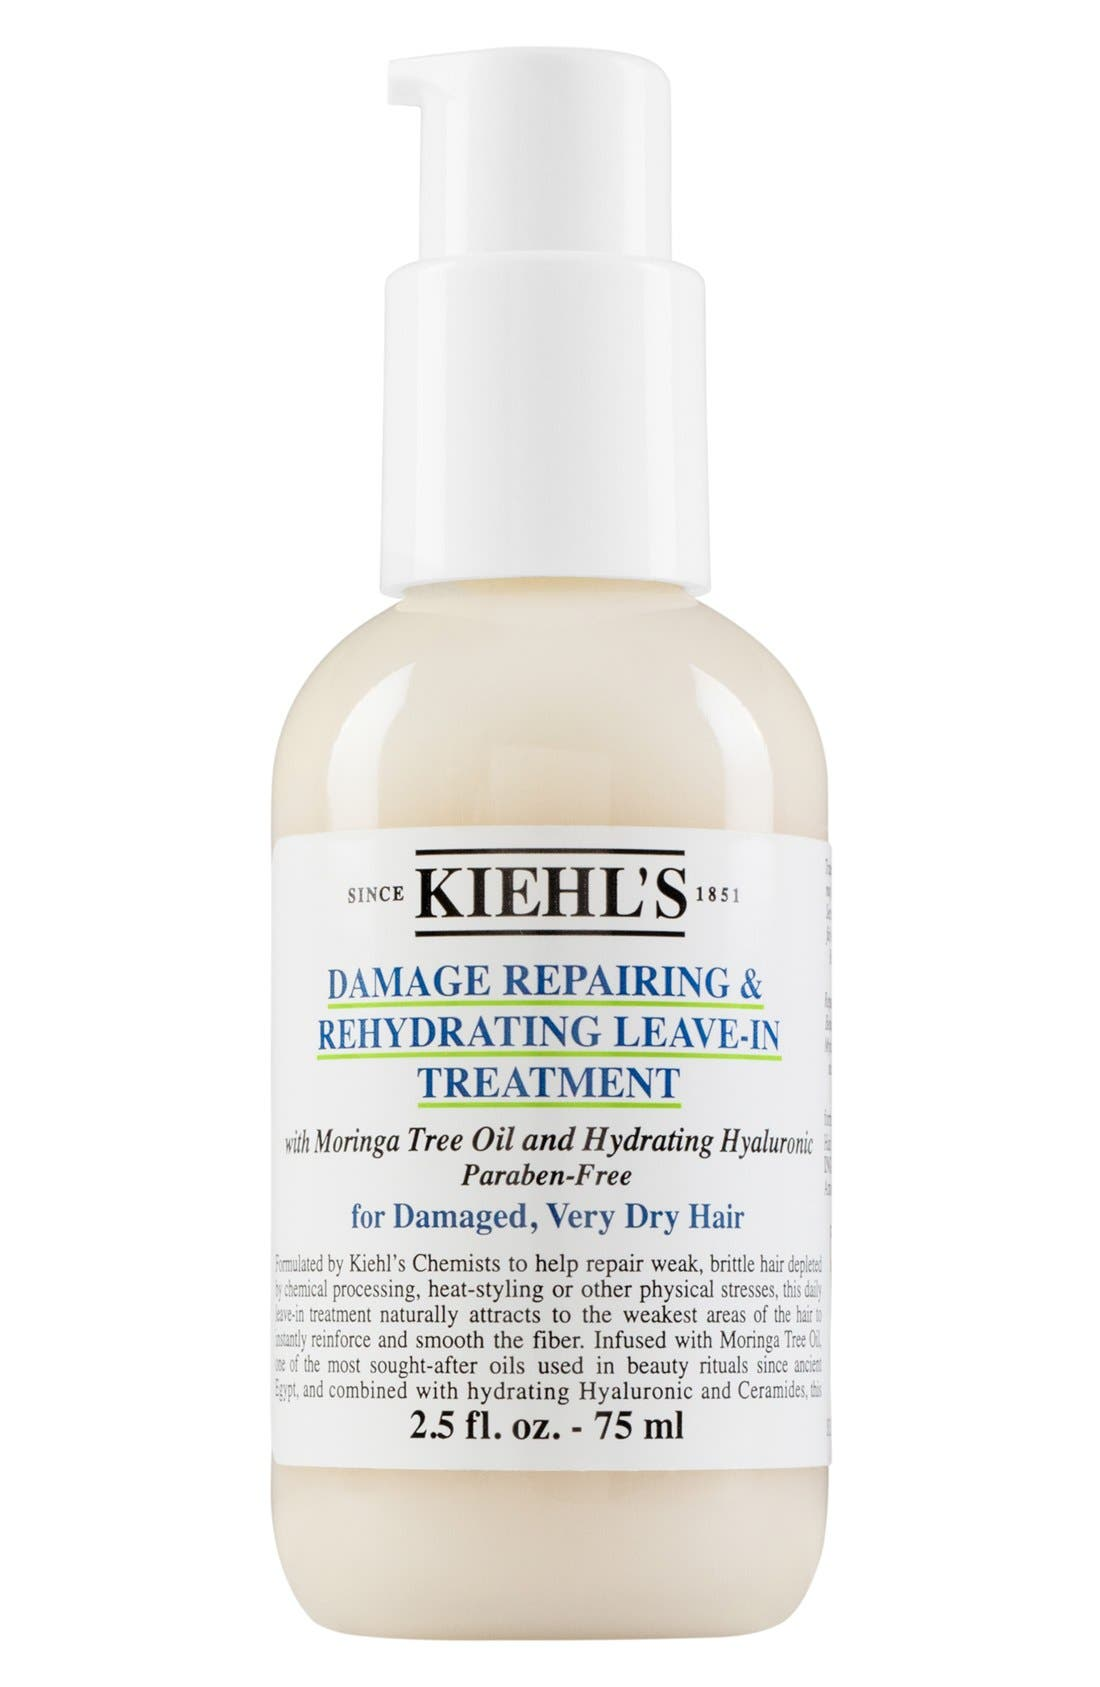 Kiehl's Since 1851 Damage Repairing & Rehydrating Leave-In Treatment